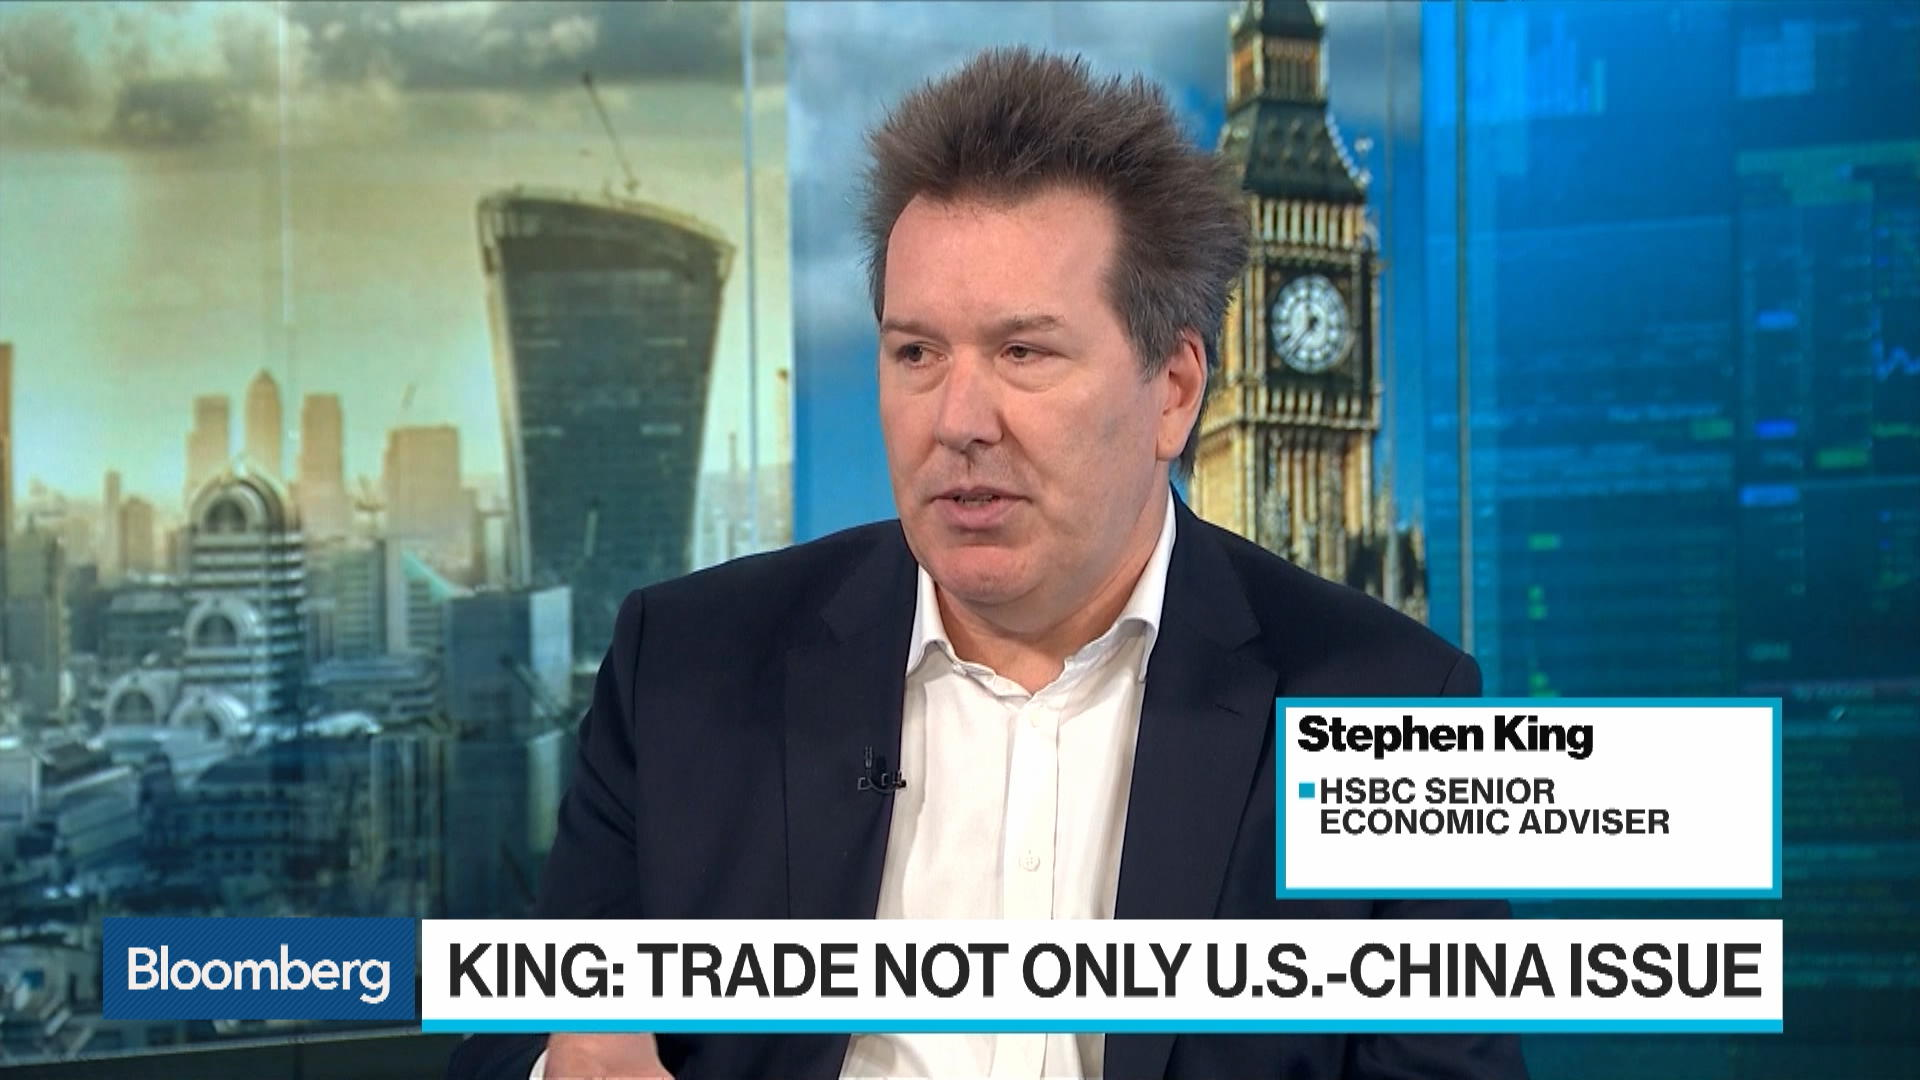 Trade War Is Lose-Lose Situation Says HSBC's King